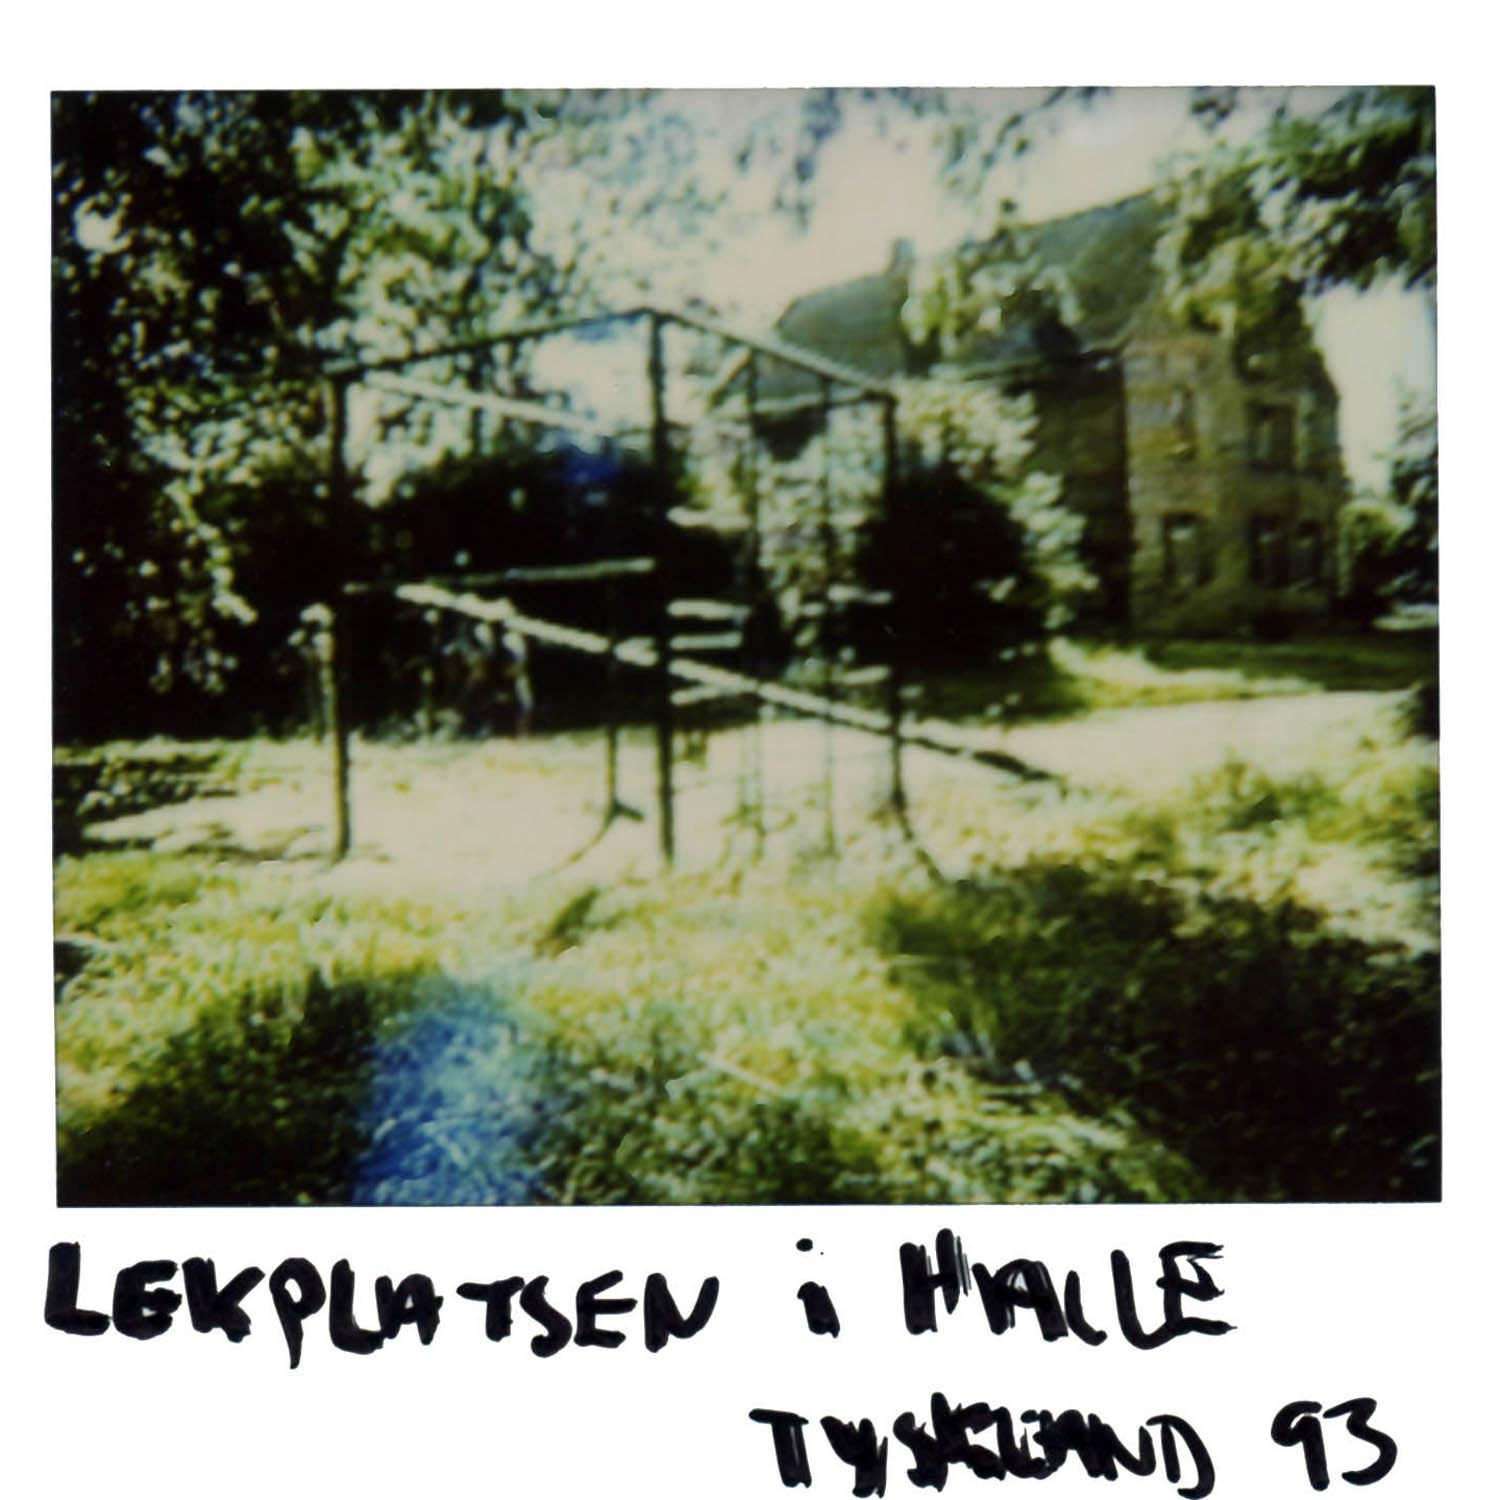 The playground in Halle  GERMANY -93